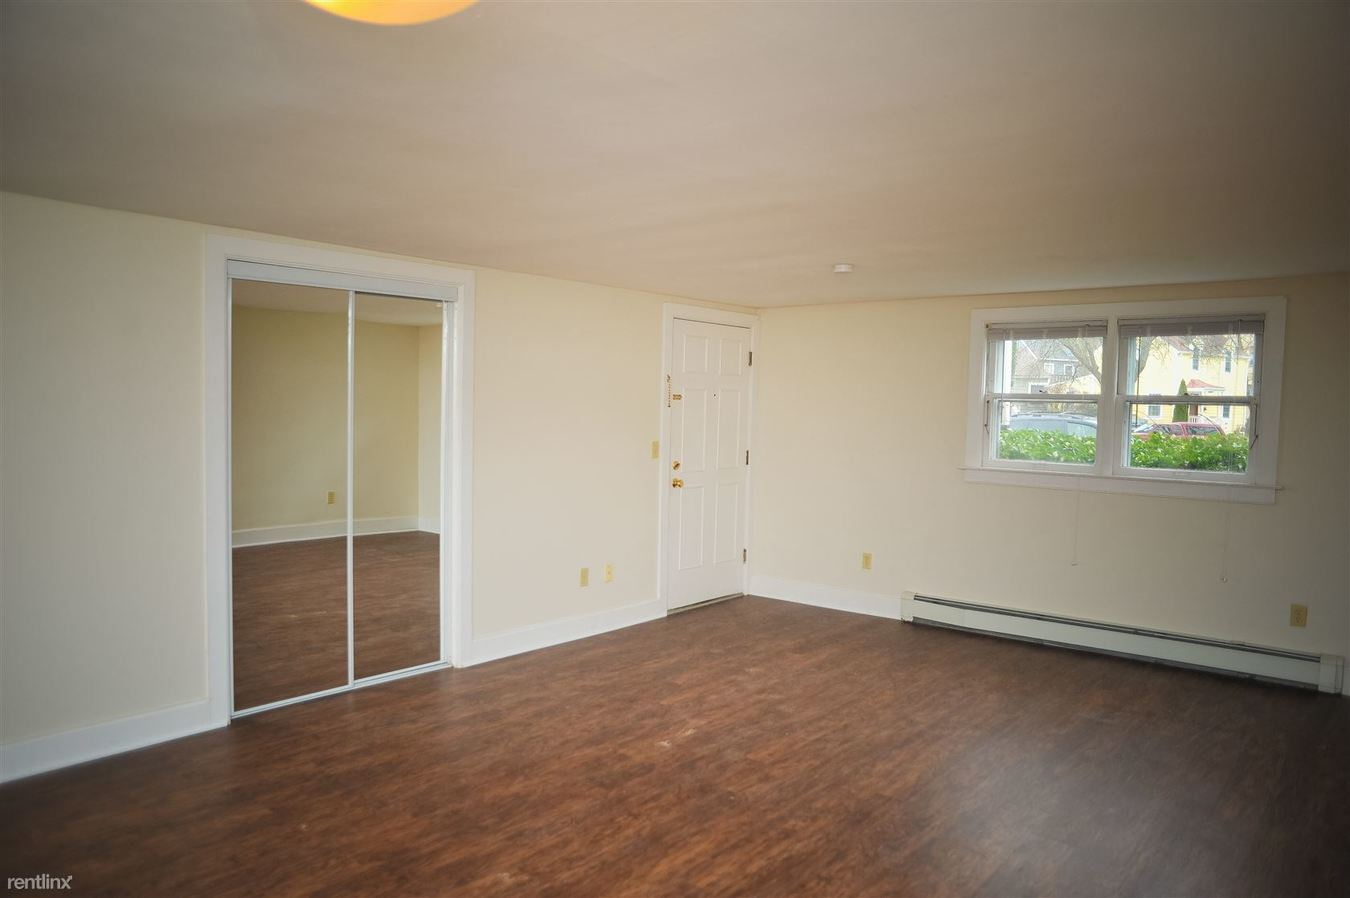 2 Bedrooms 1 Bathroom Apartment for rent at 413 W Hoover Ave in Ann Arbor, MI